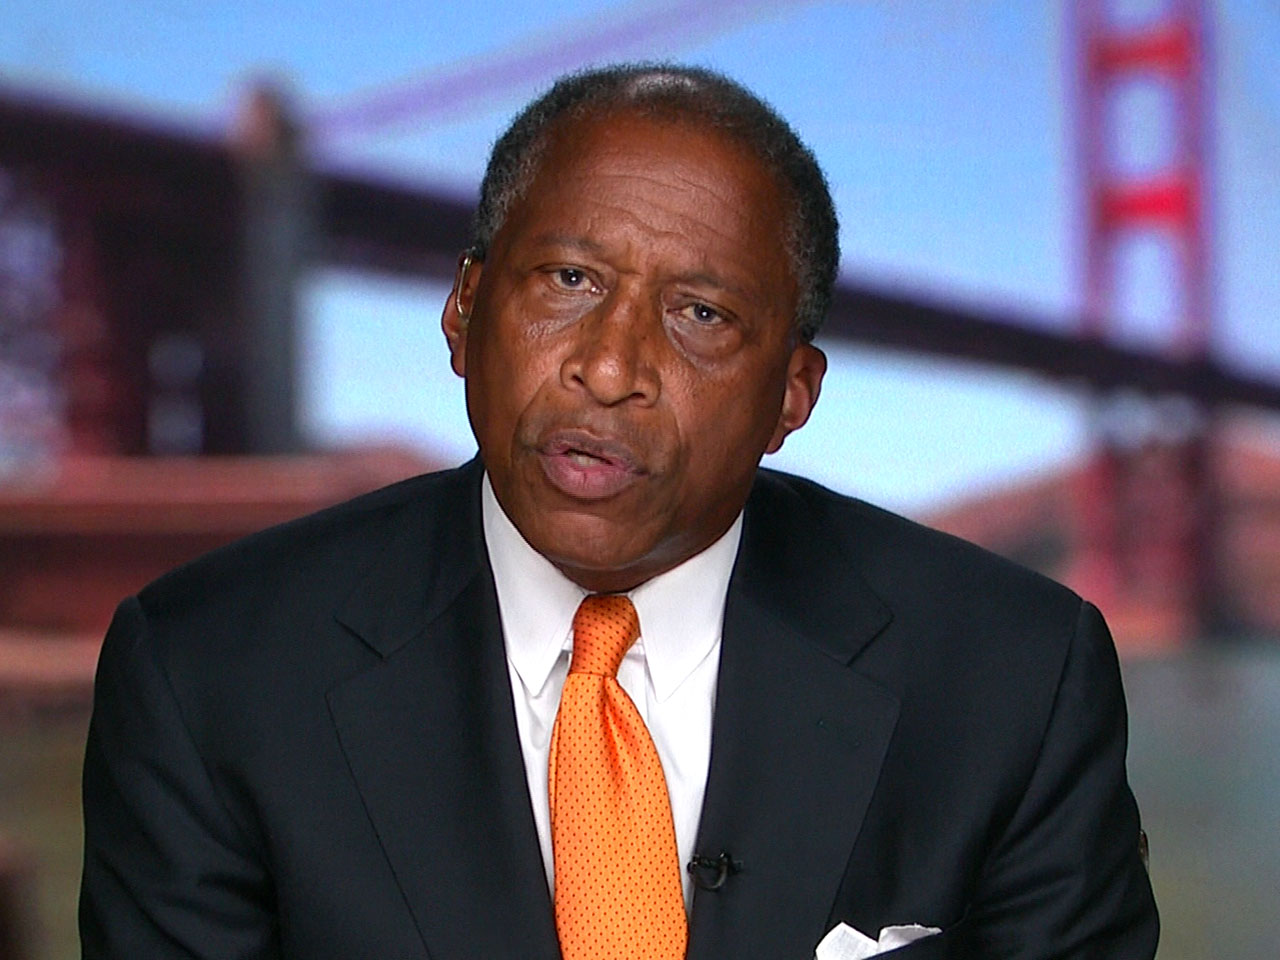 Alienating quot wife and journalist last month, msnbcs al sharpton